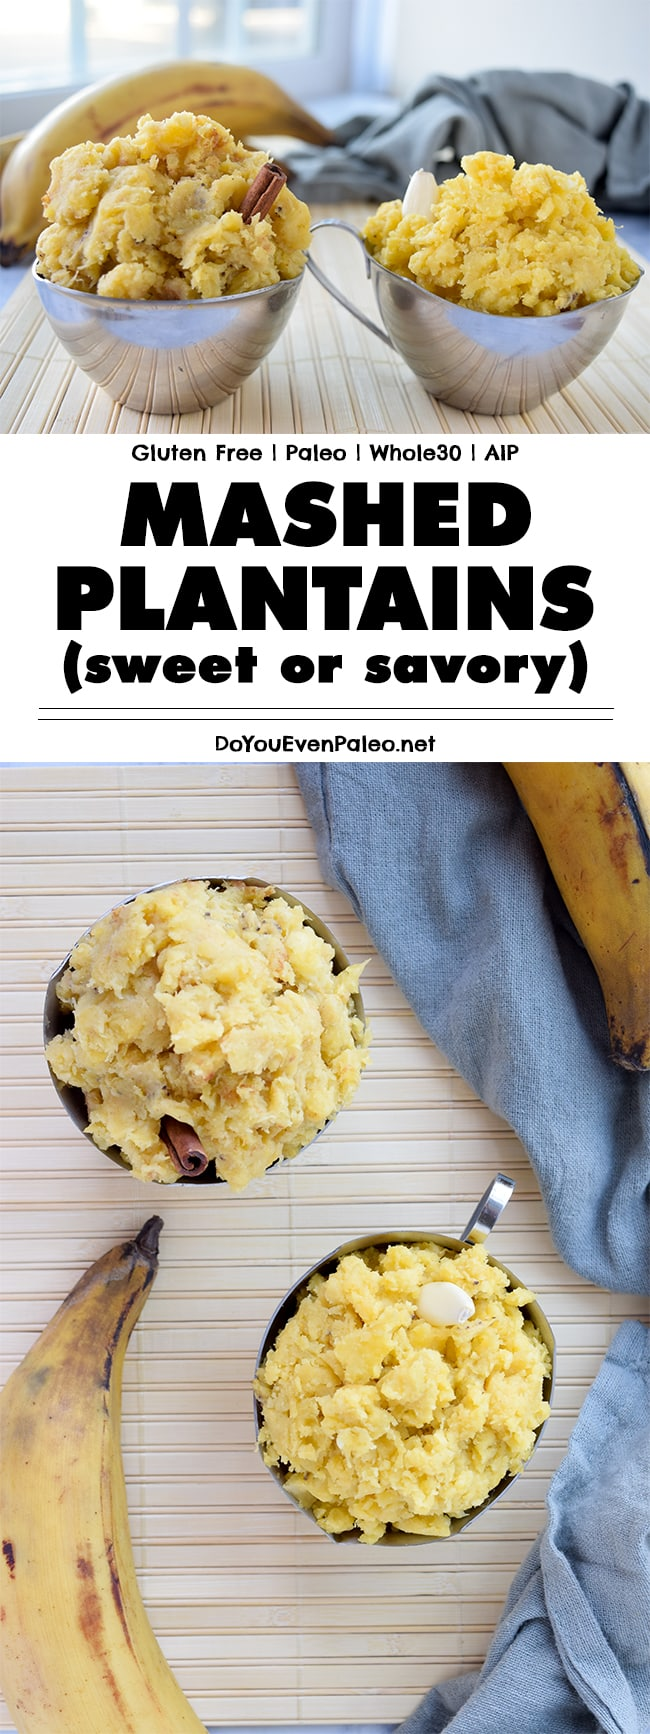 Mashed Plantains (Sweet or Savory) - Whether you have green plantains or yellow-brown plantains, this is the perfect healthy recipe to use them up! This paleo recipe is also Whole30, gluten free, AIP, and clean eating friendly. | DoYouEvenPaleo.net #paleo #glutenfree #doyouevenpaleo #whole30